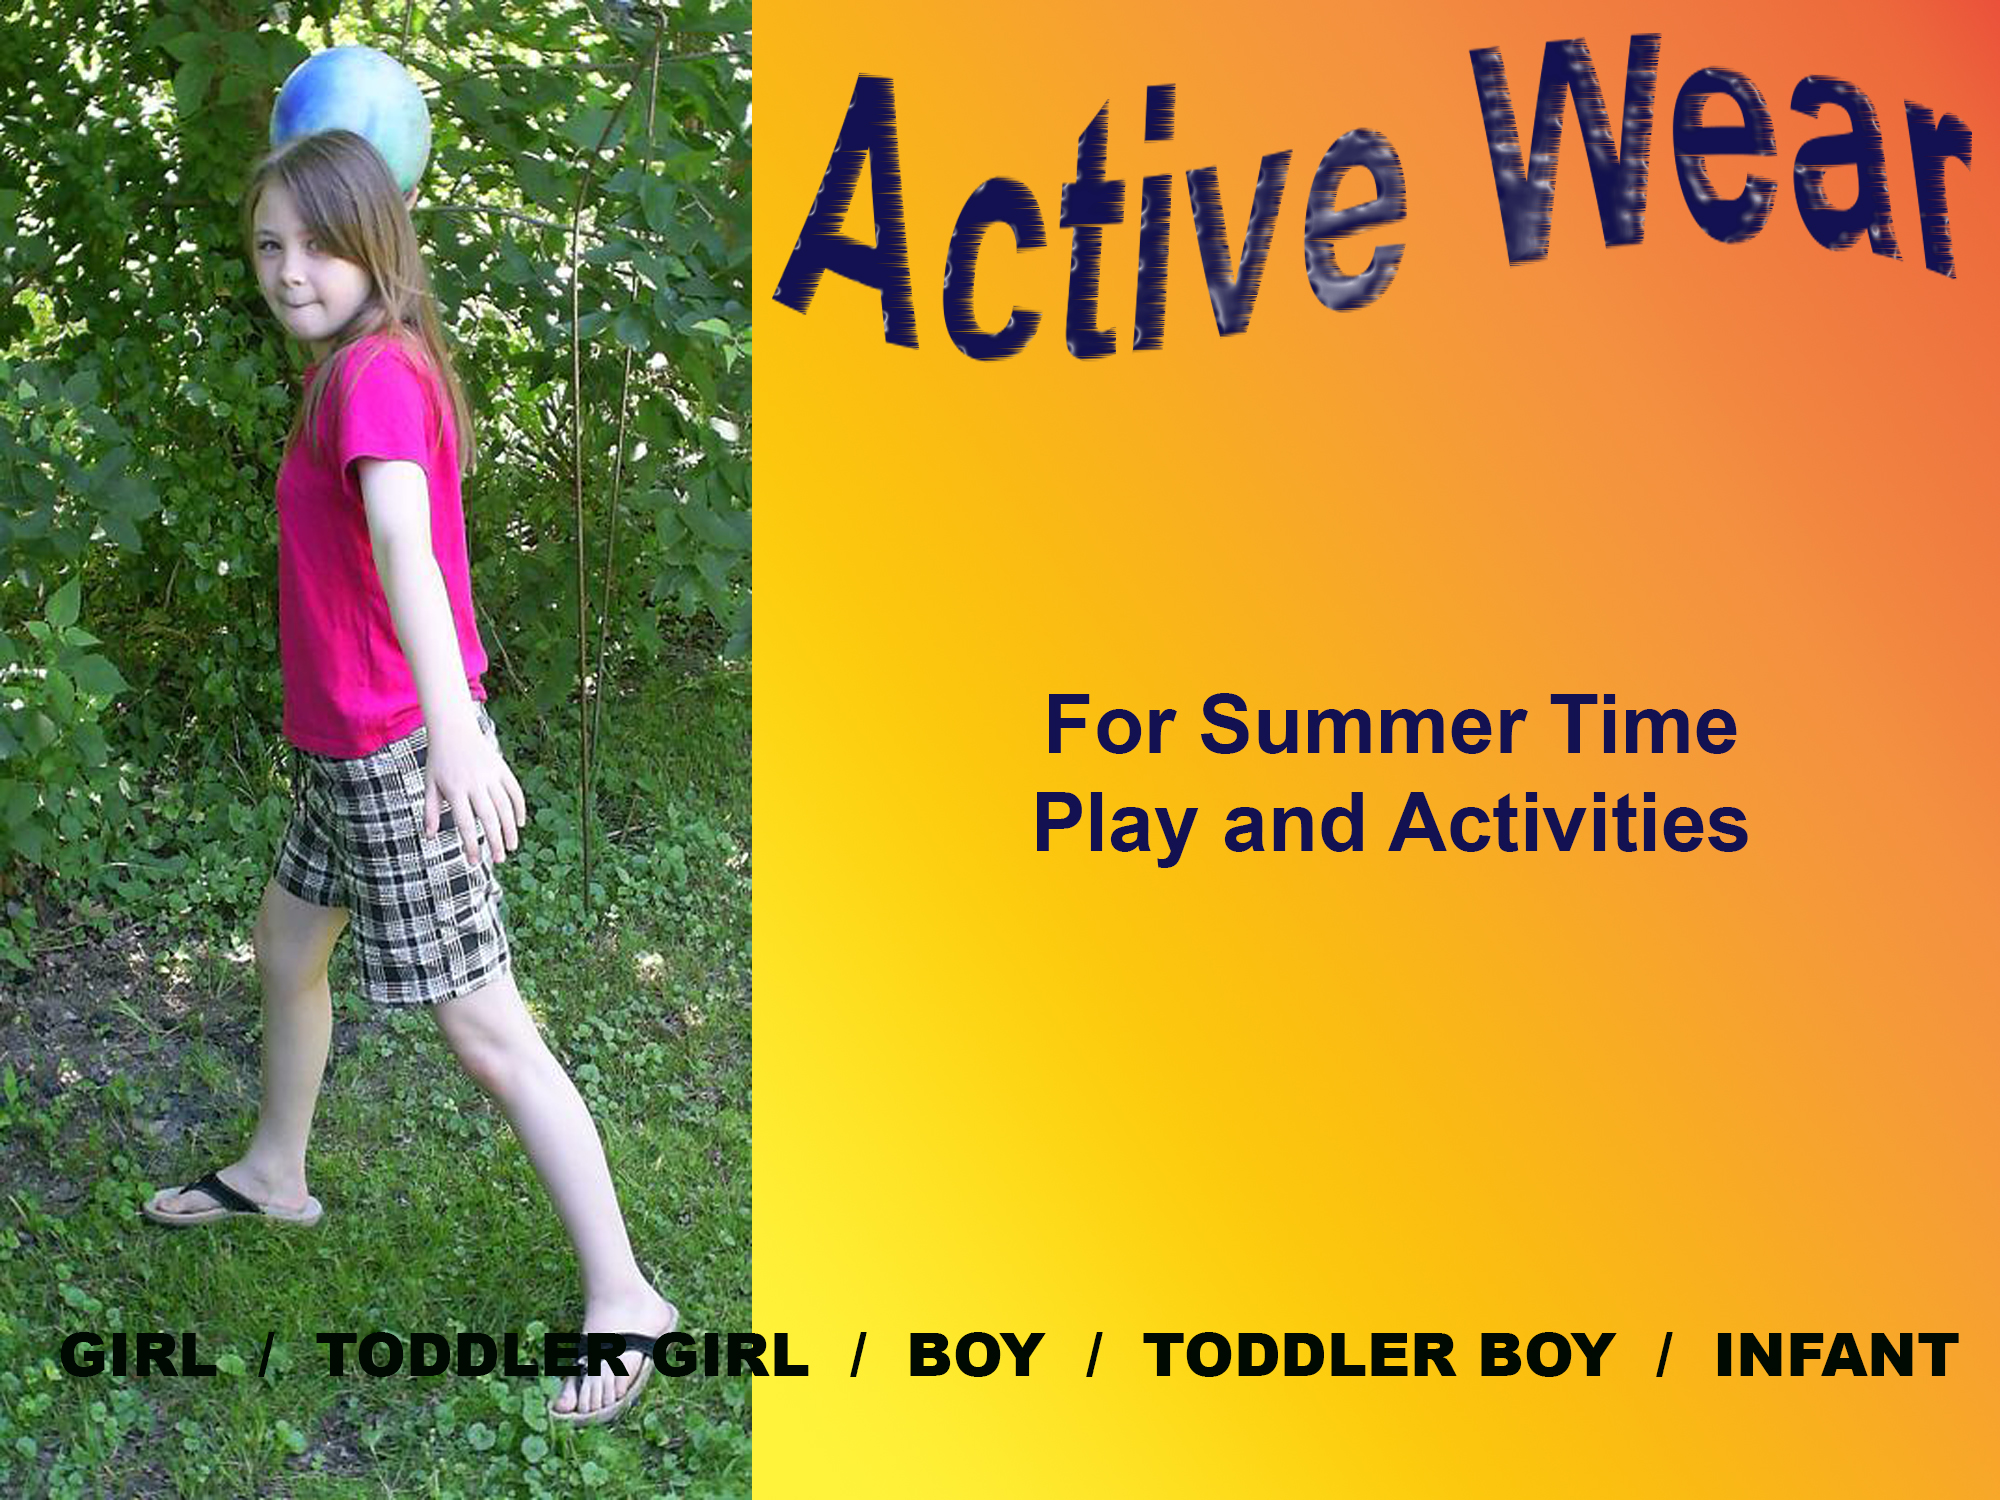 Rosebud Children's Fashions by Gothique Rose Apparel Active Wear - For summertime play and activities